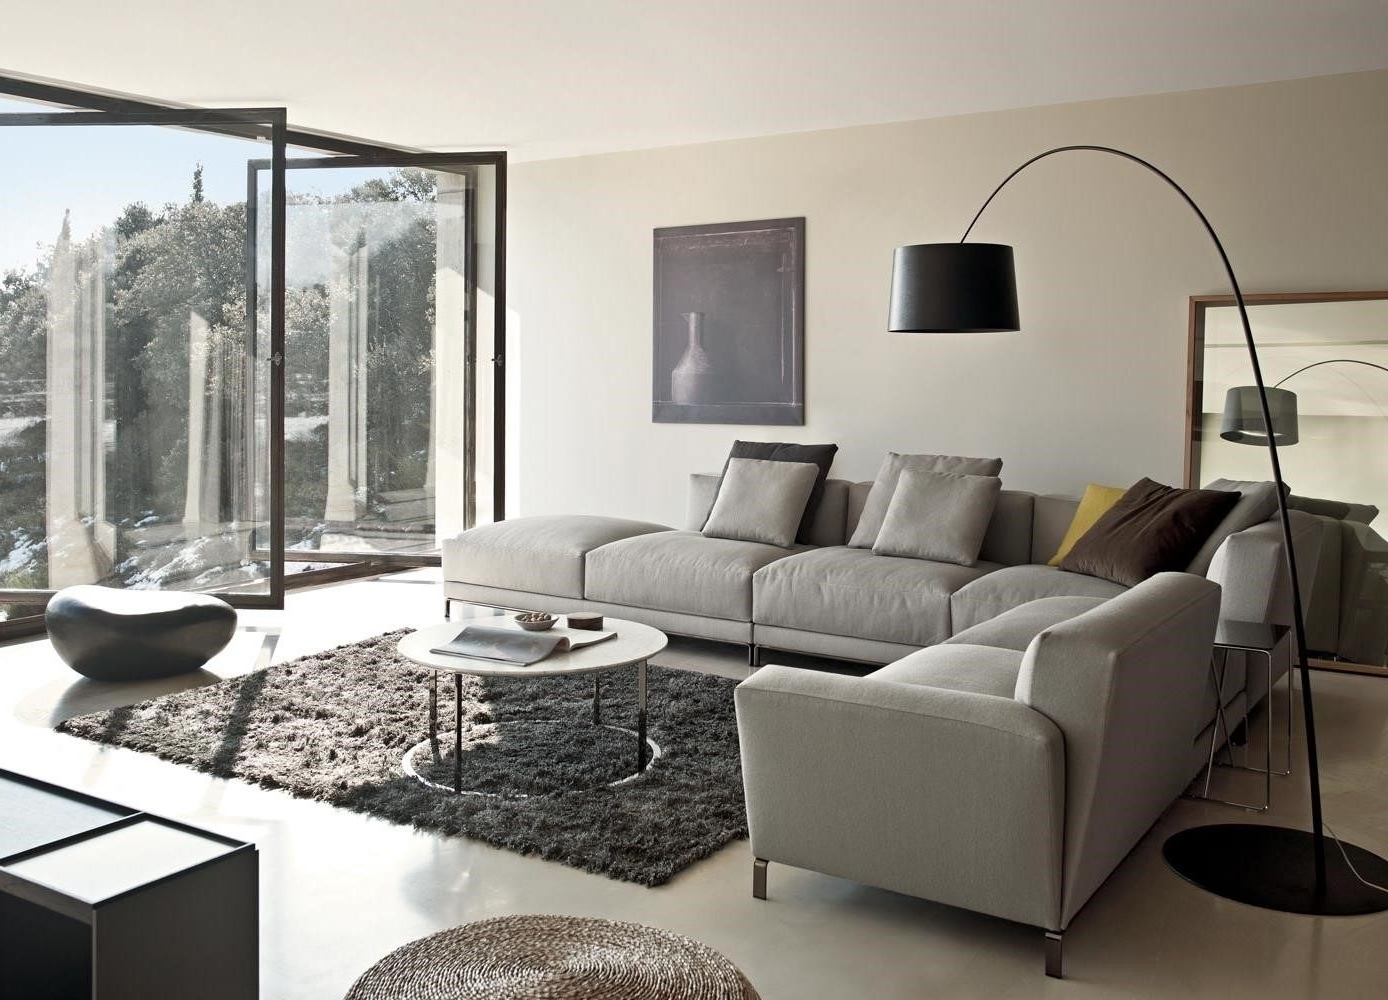 Sectional Sofas For Condos Intended For 2018 Beautiful Small Sectional Sofa For Apartment 12 For Your Condo (View 3 of 20)